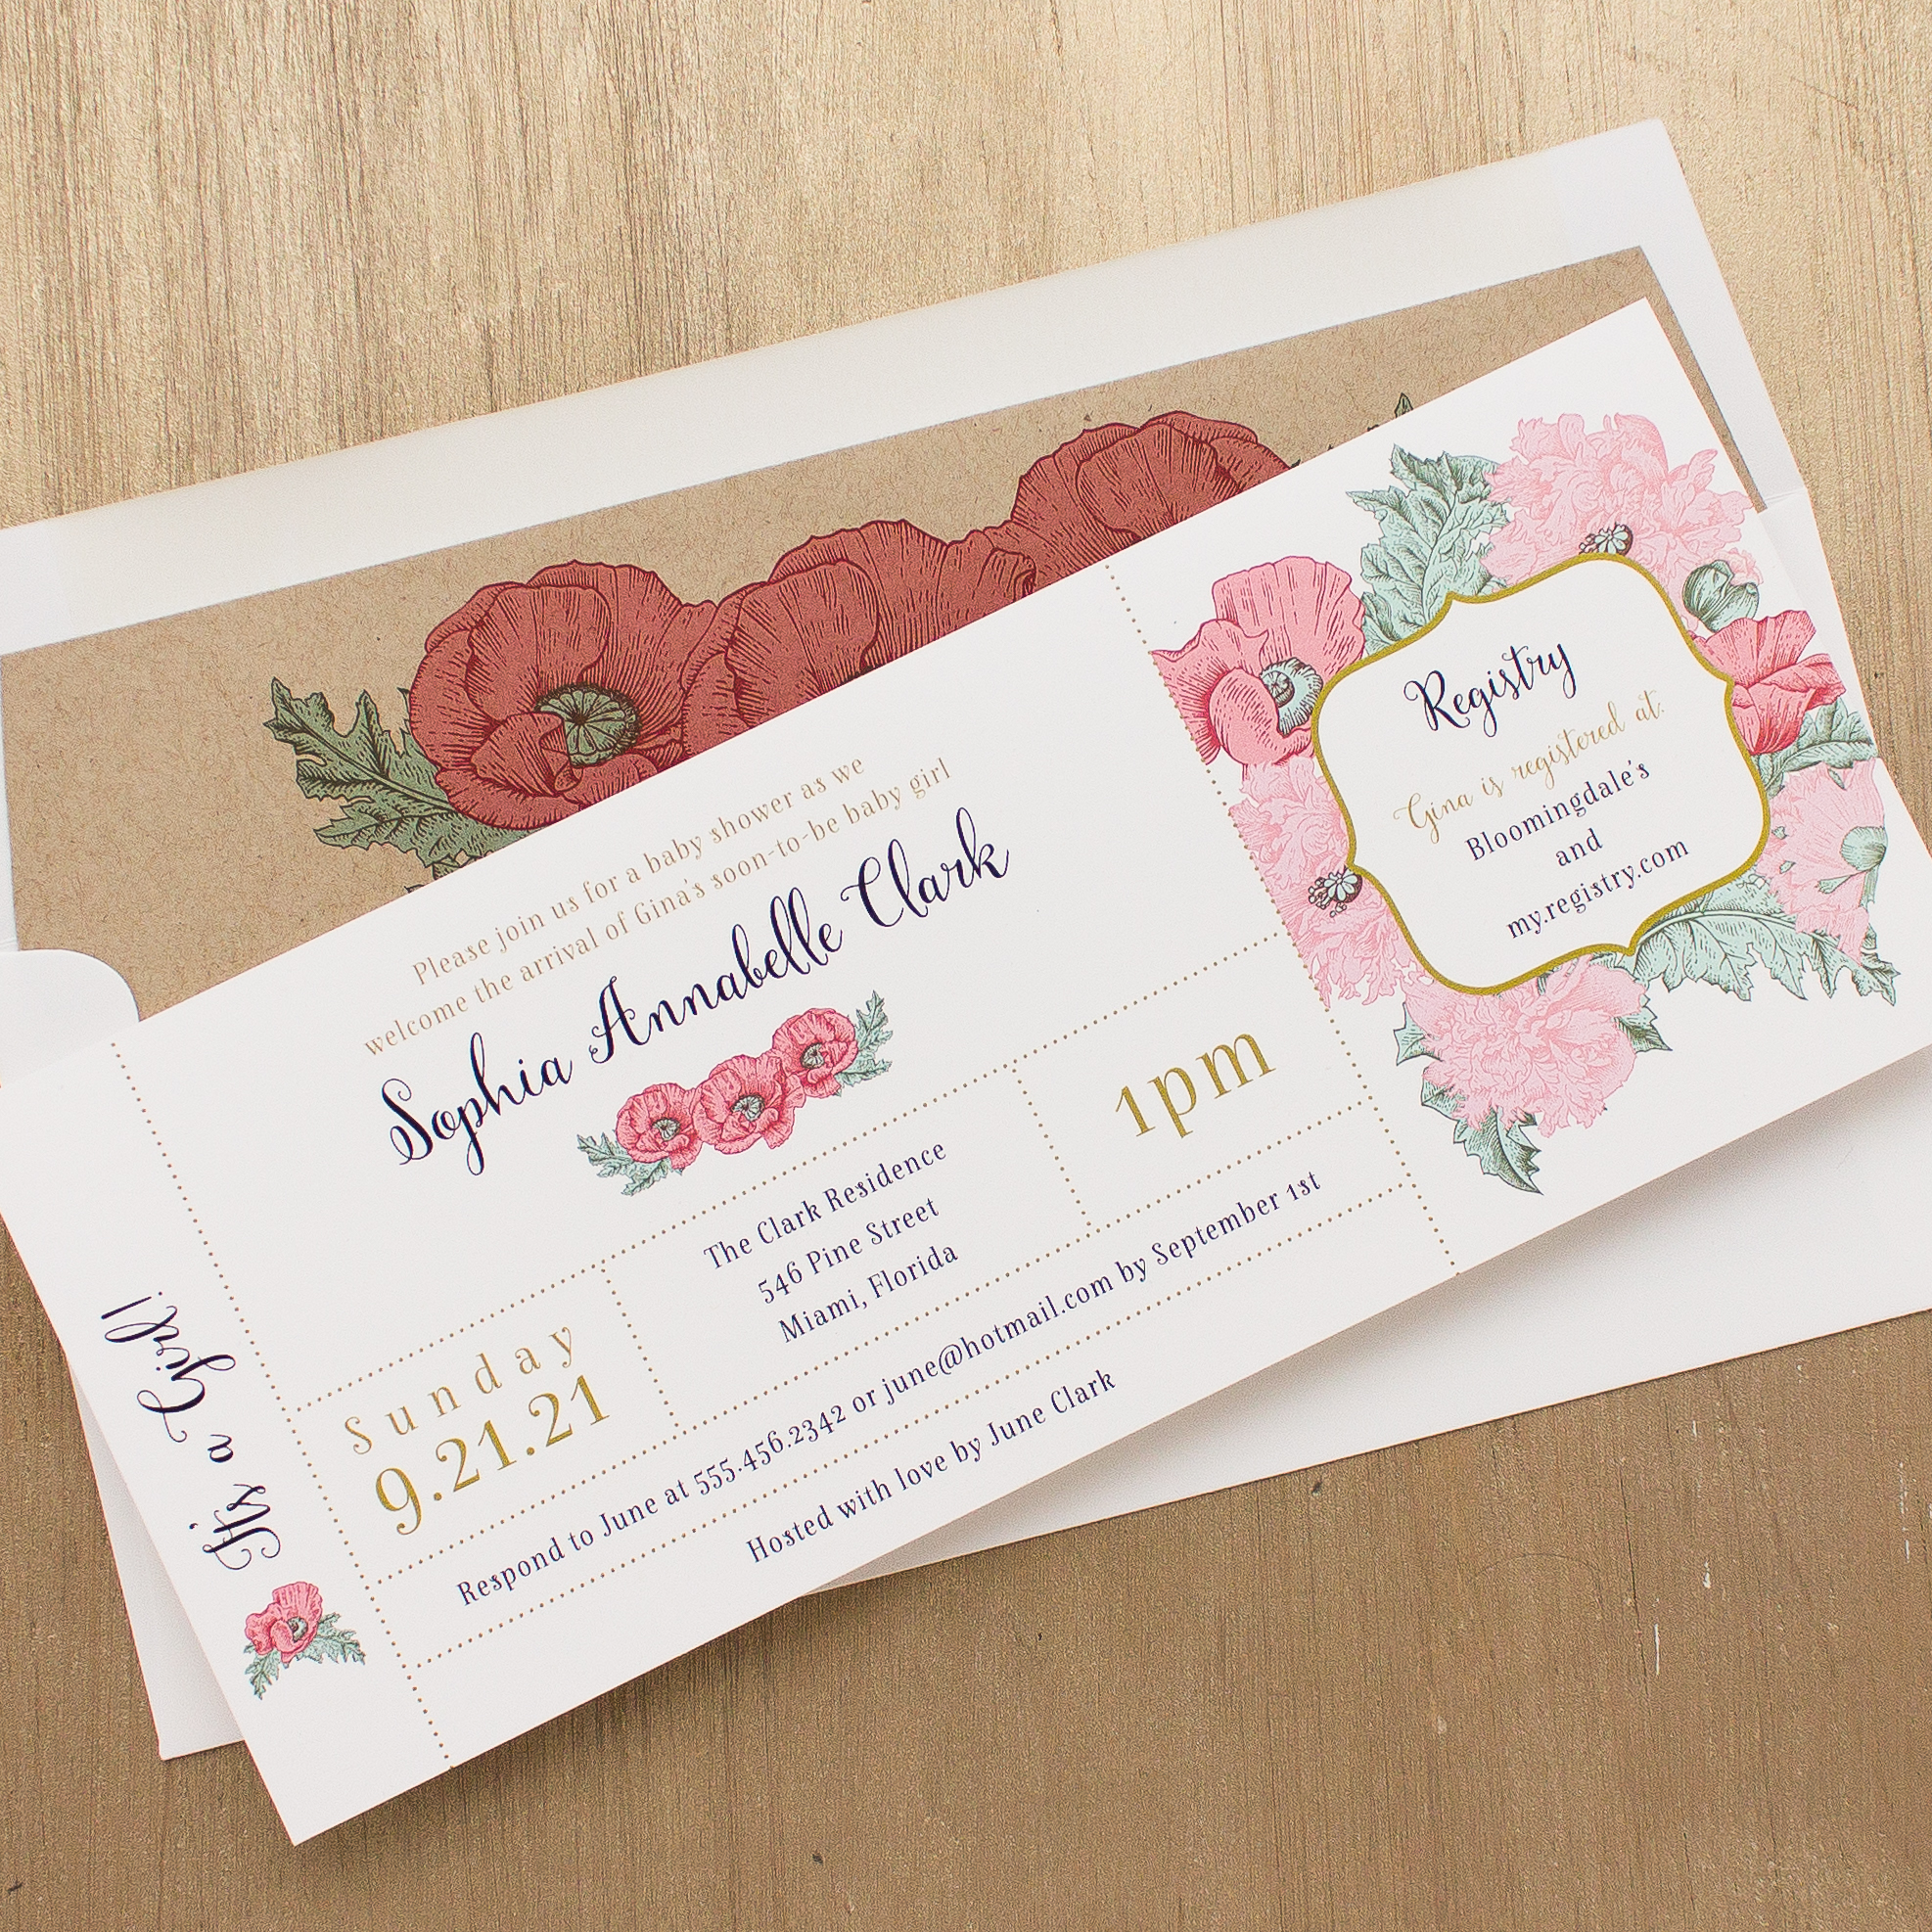 Rosies & Posies Baby Shower Invitations